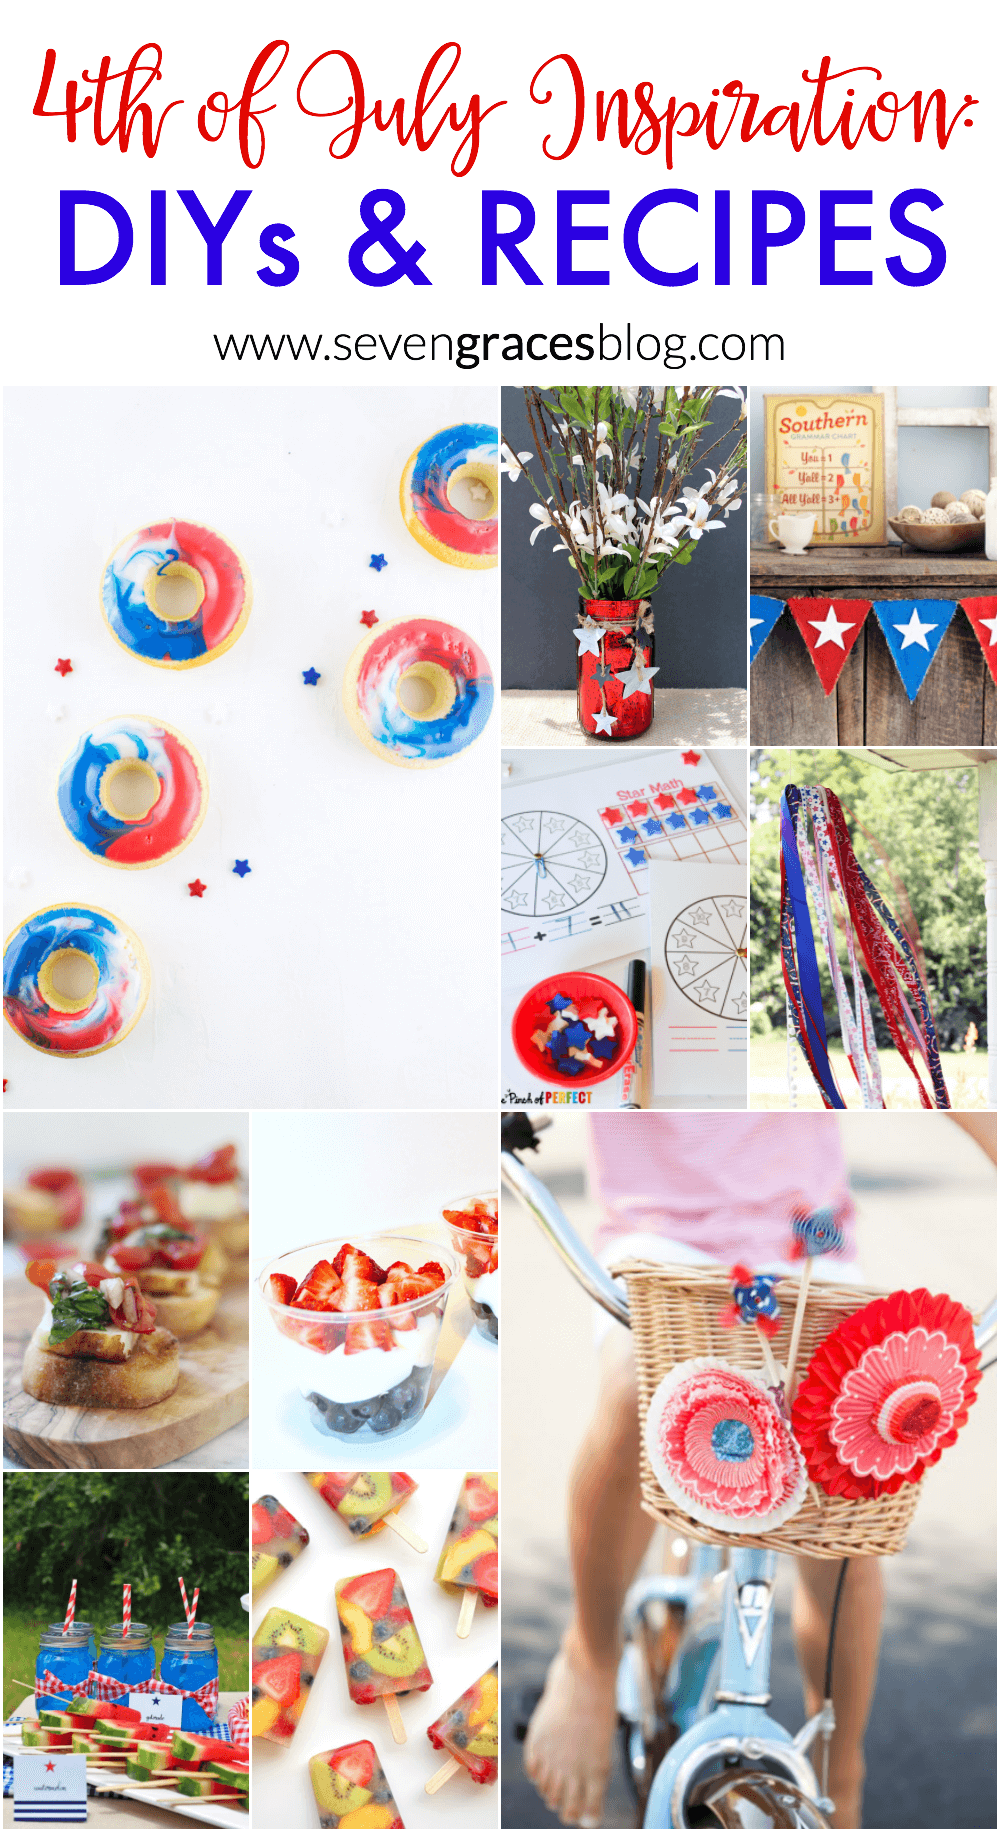 4th of July Inspiration for DIYs and recipes. Fun and patriotic finds from some of the best blogs around.